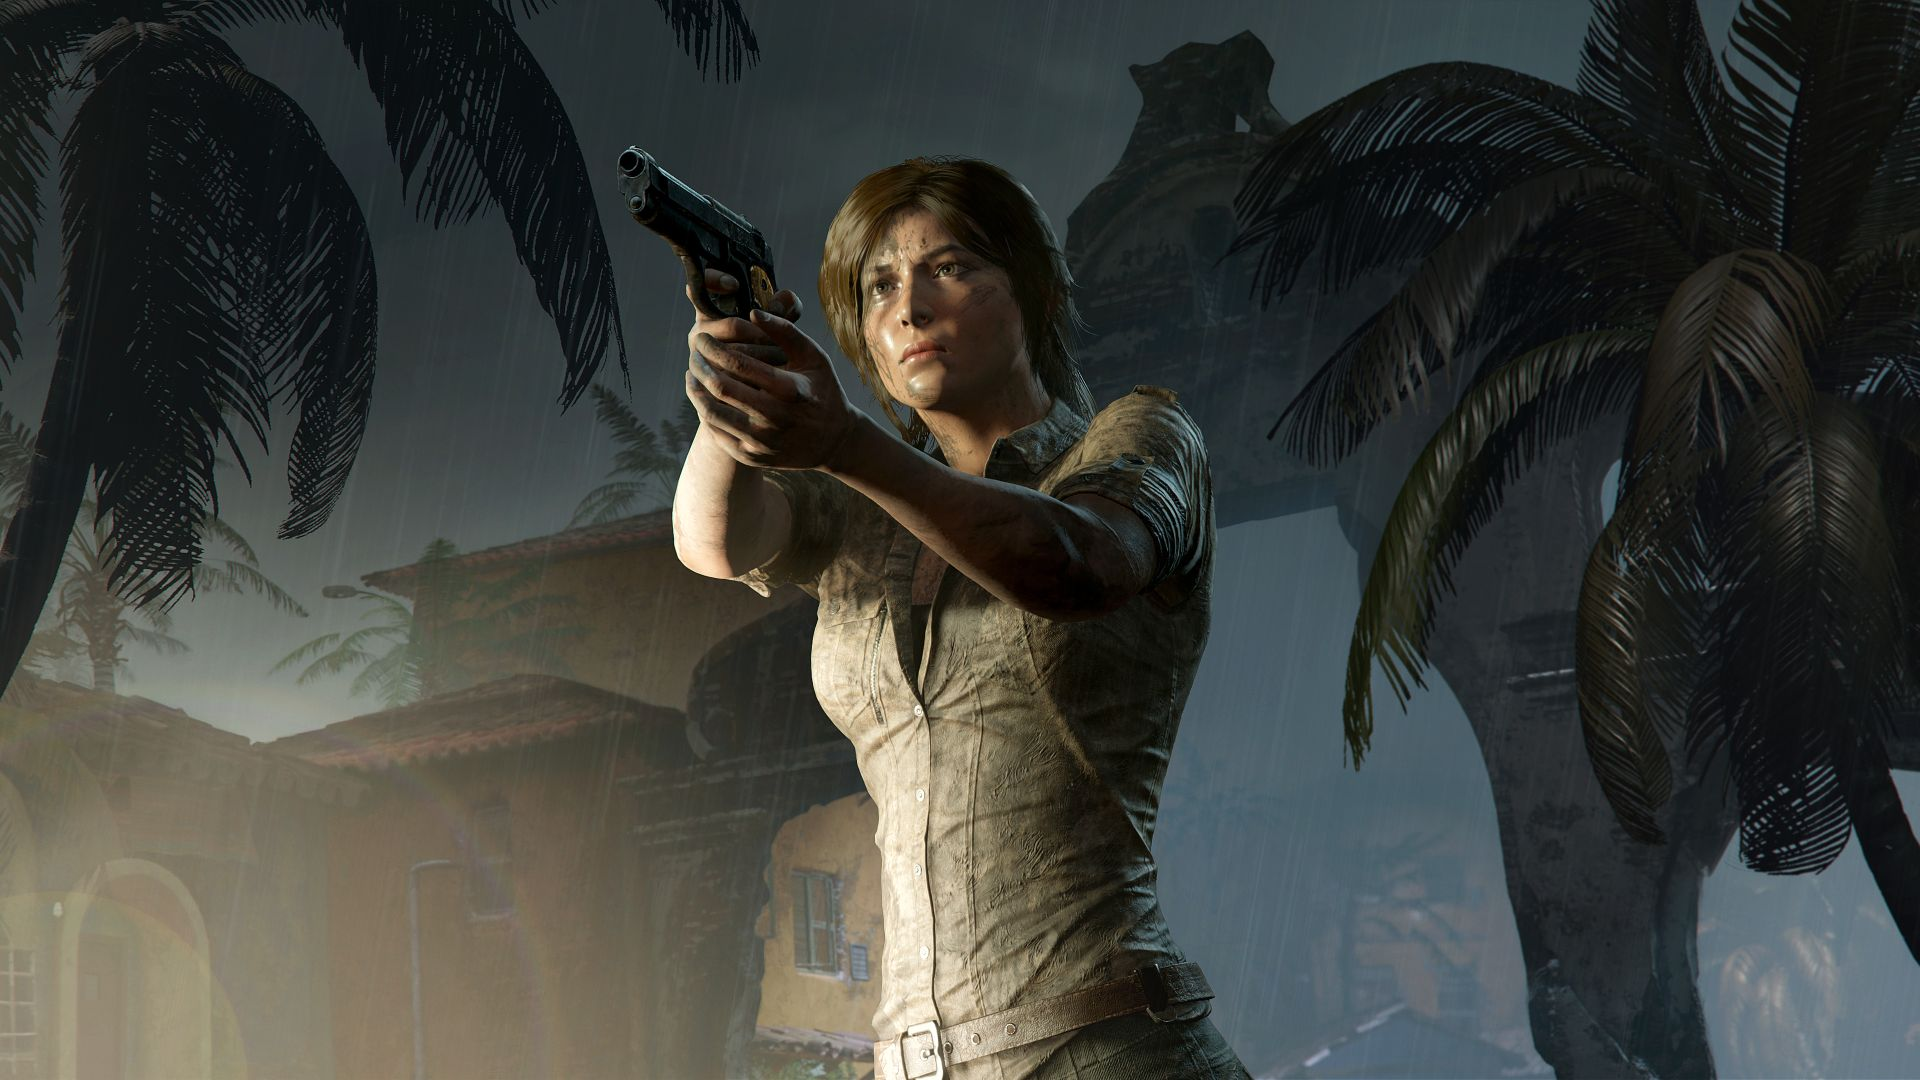 Sep 17, 2018 Reviewed: Shadows of the Tomb Raider